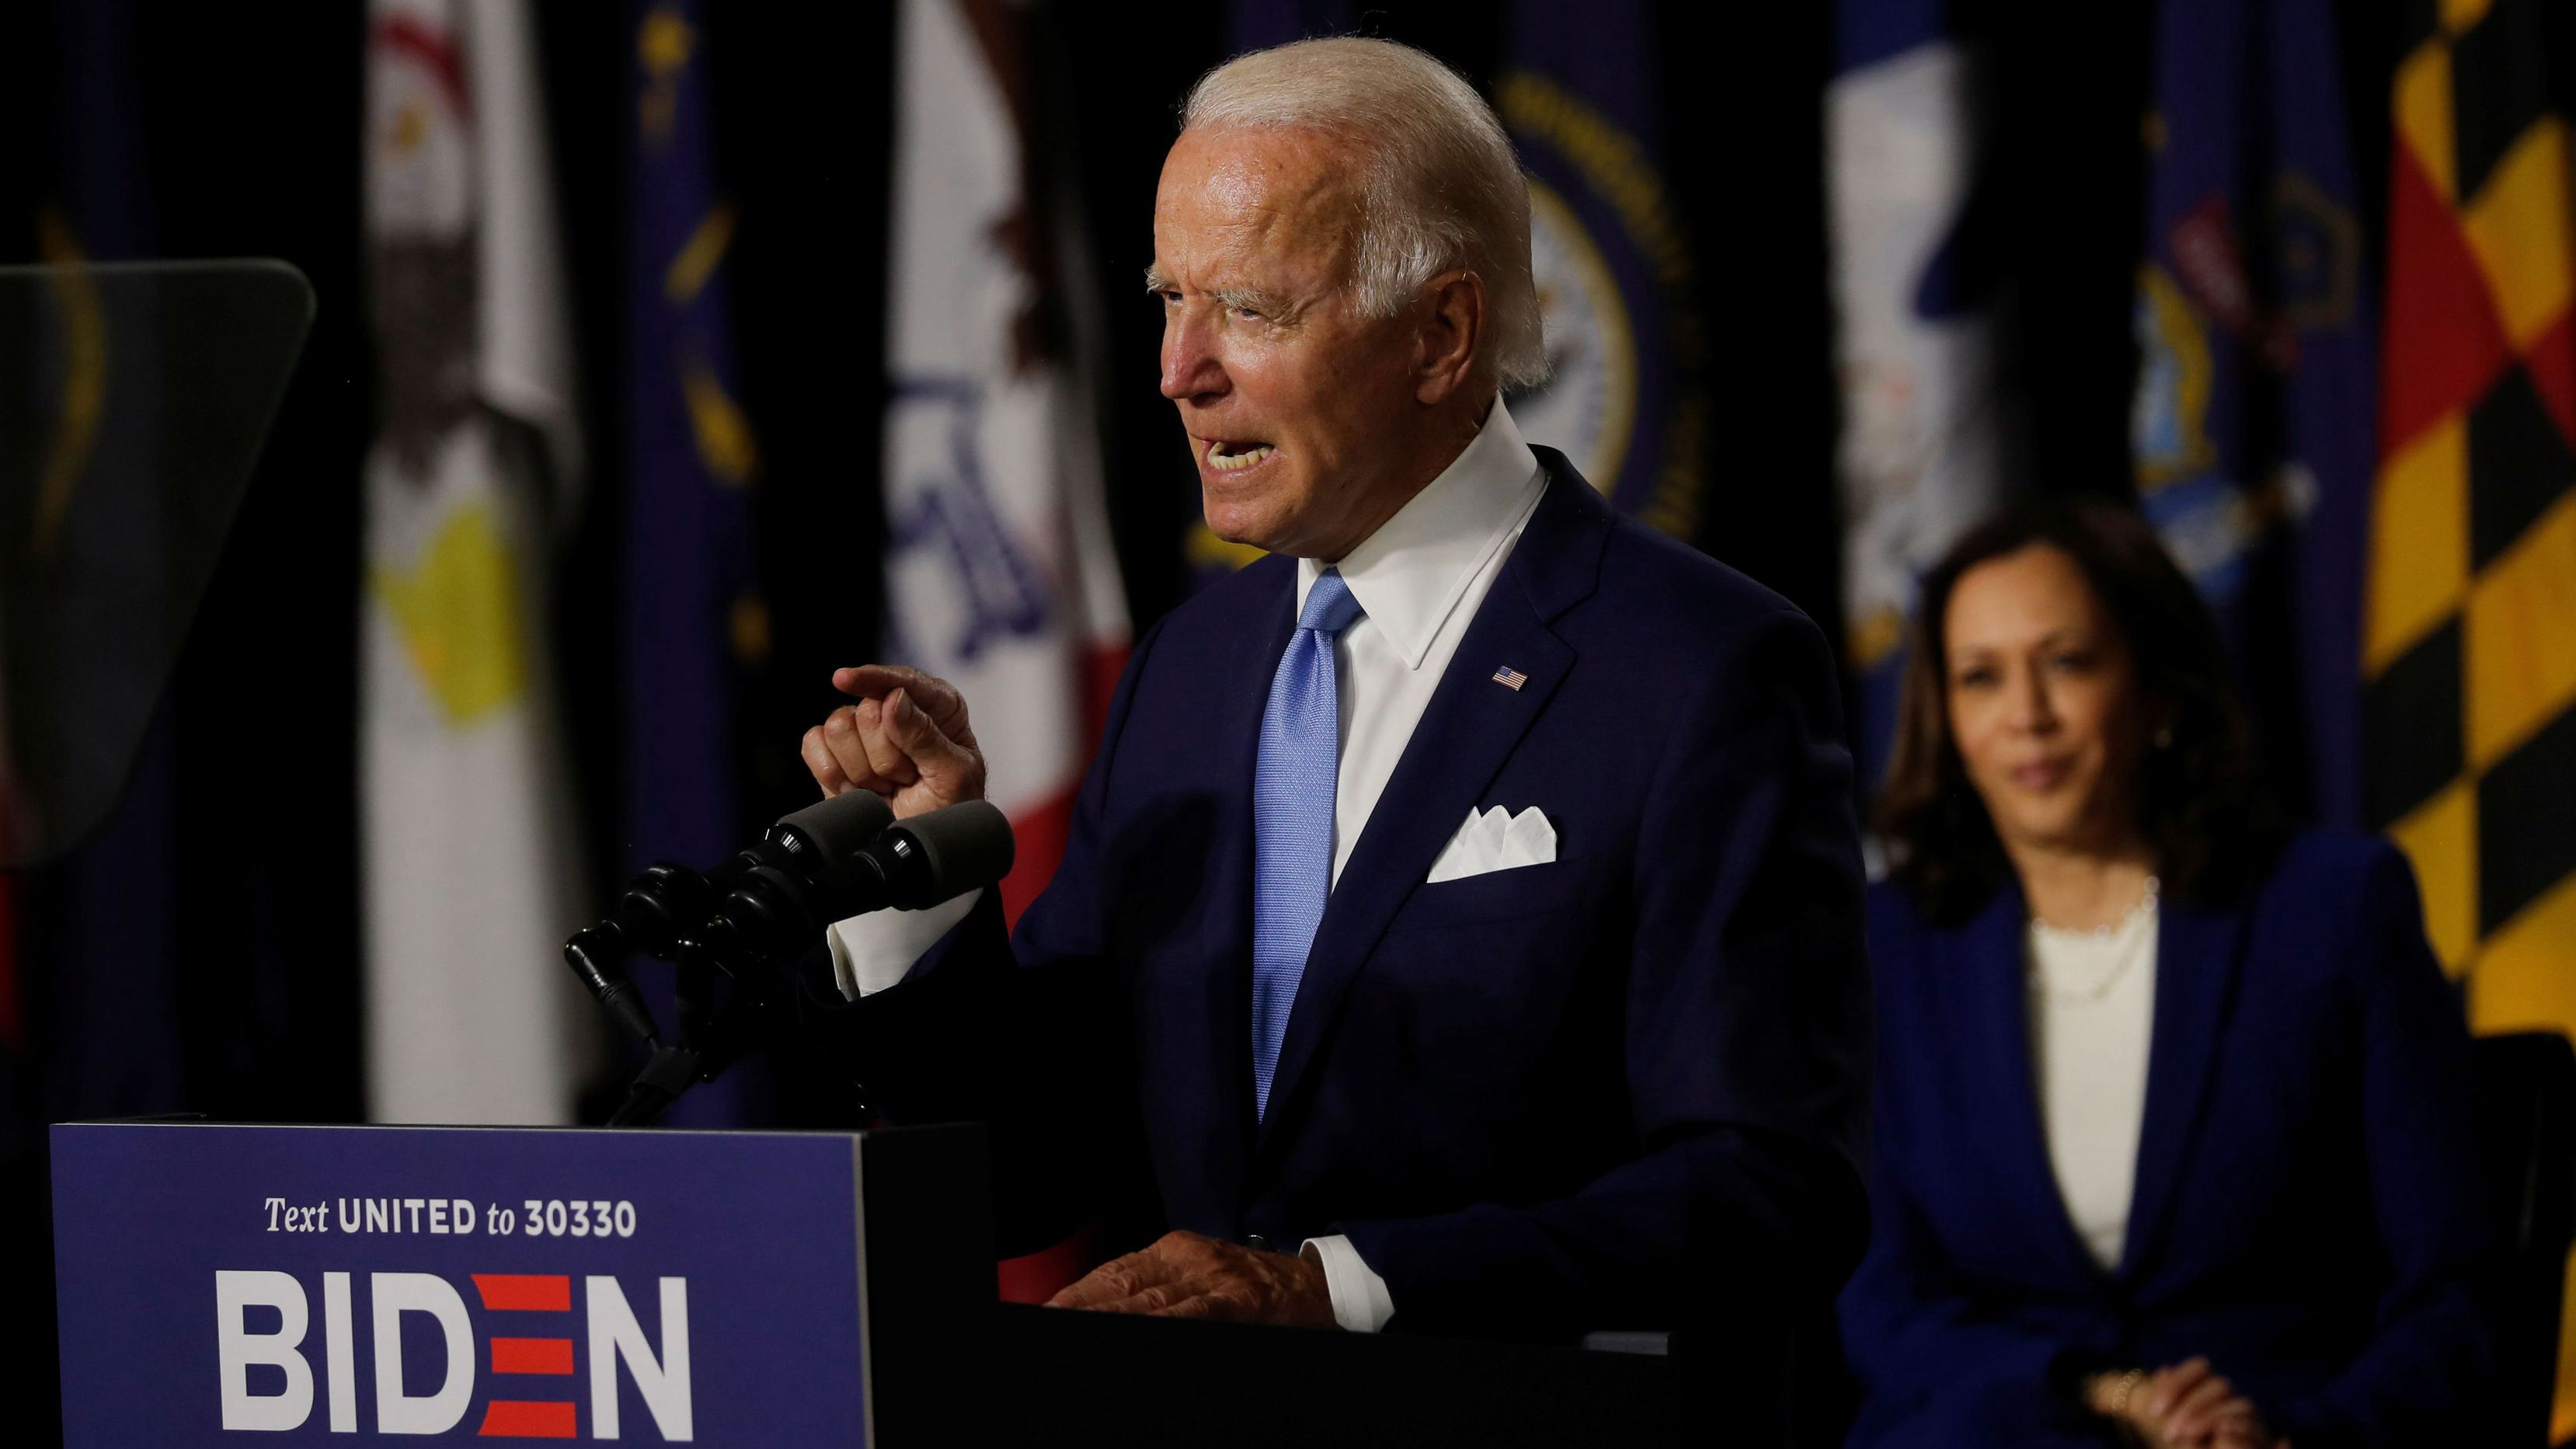 Biden accepts, Trump distracts: What to watch at Democratic convention -  CGTN